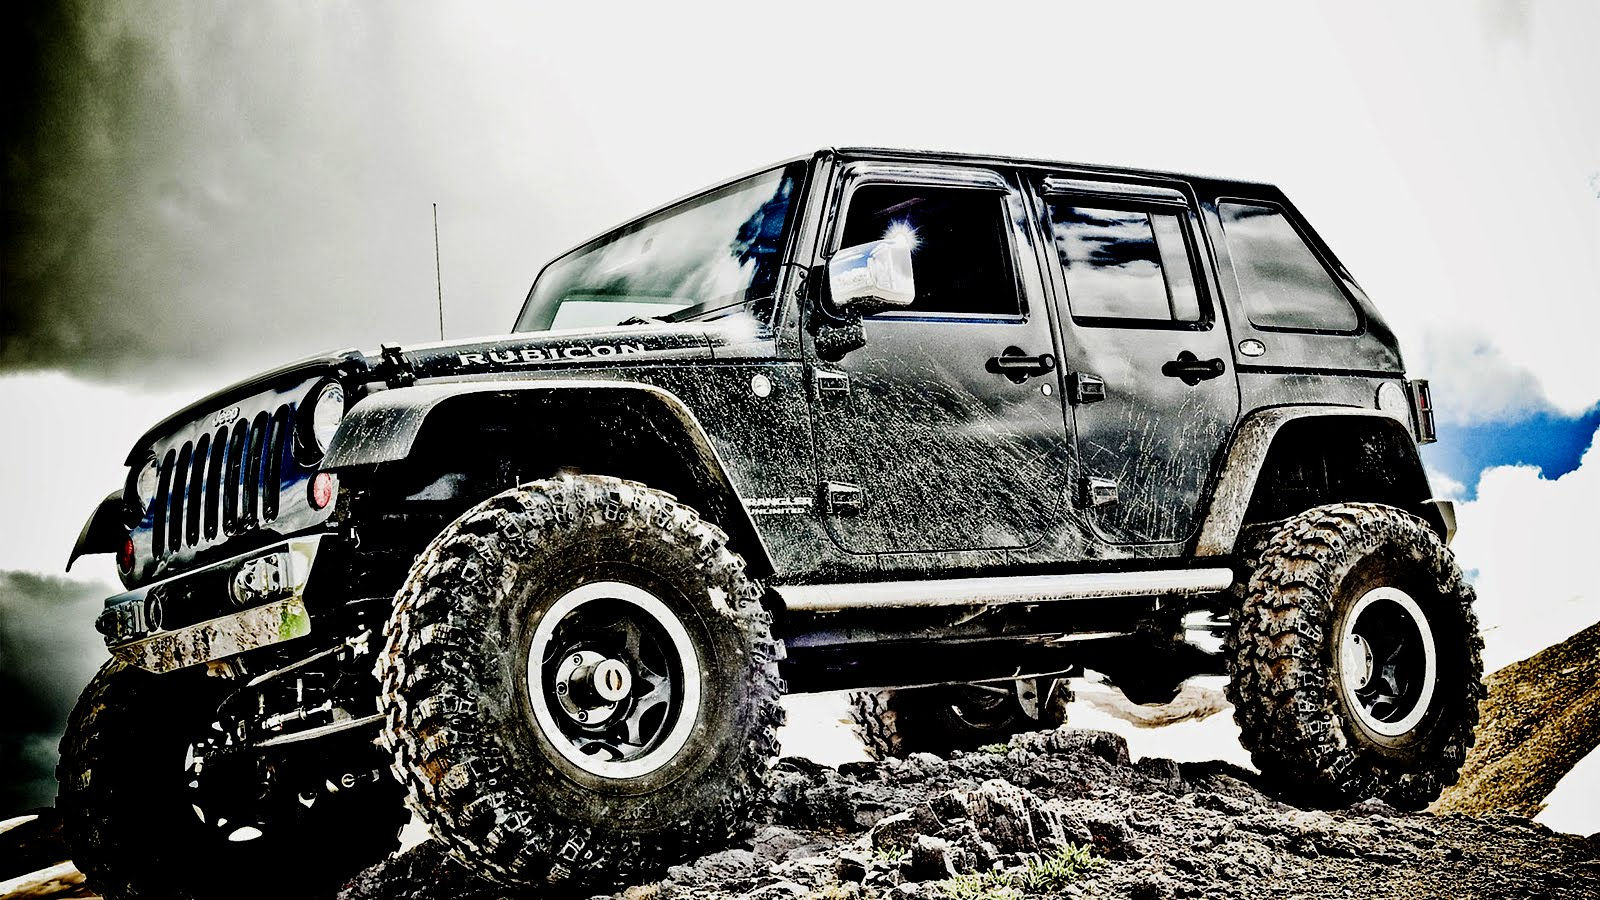 jeep free wallpaper for ur phone | car wallpapers